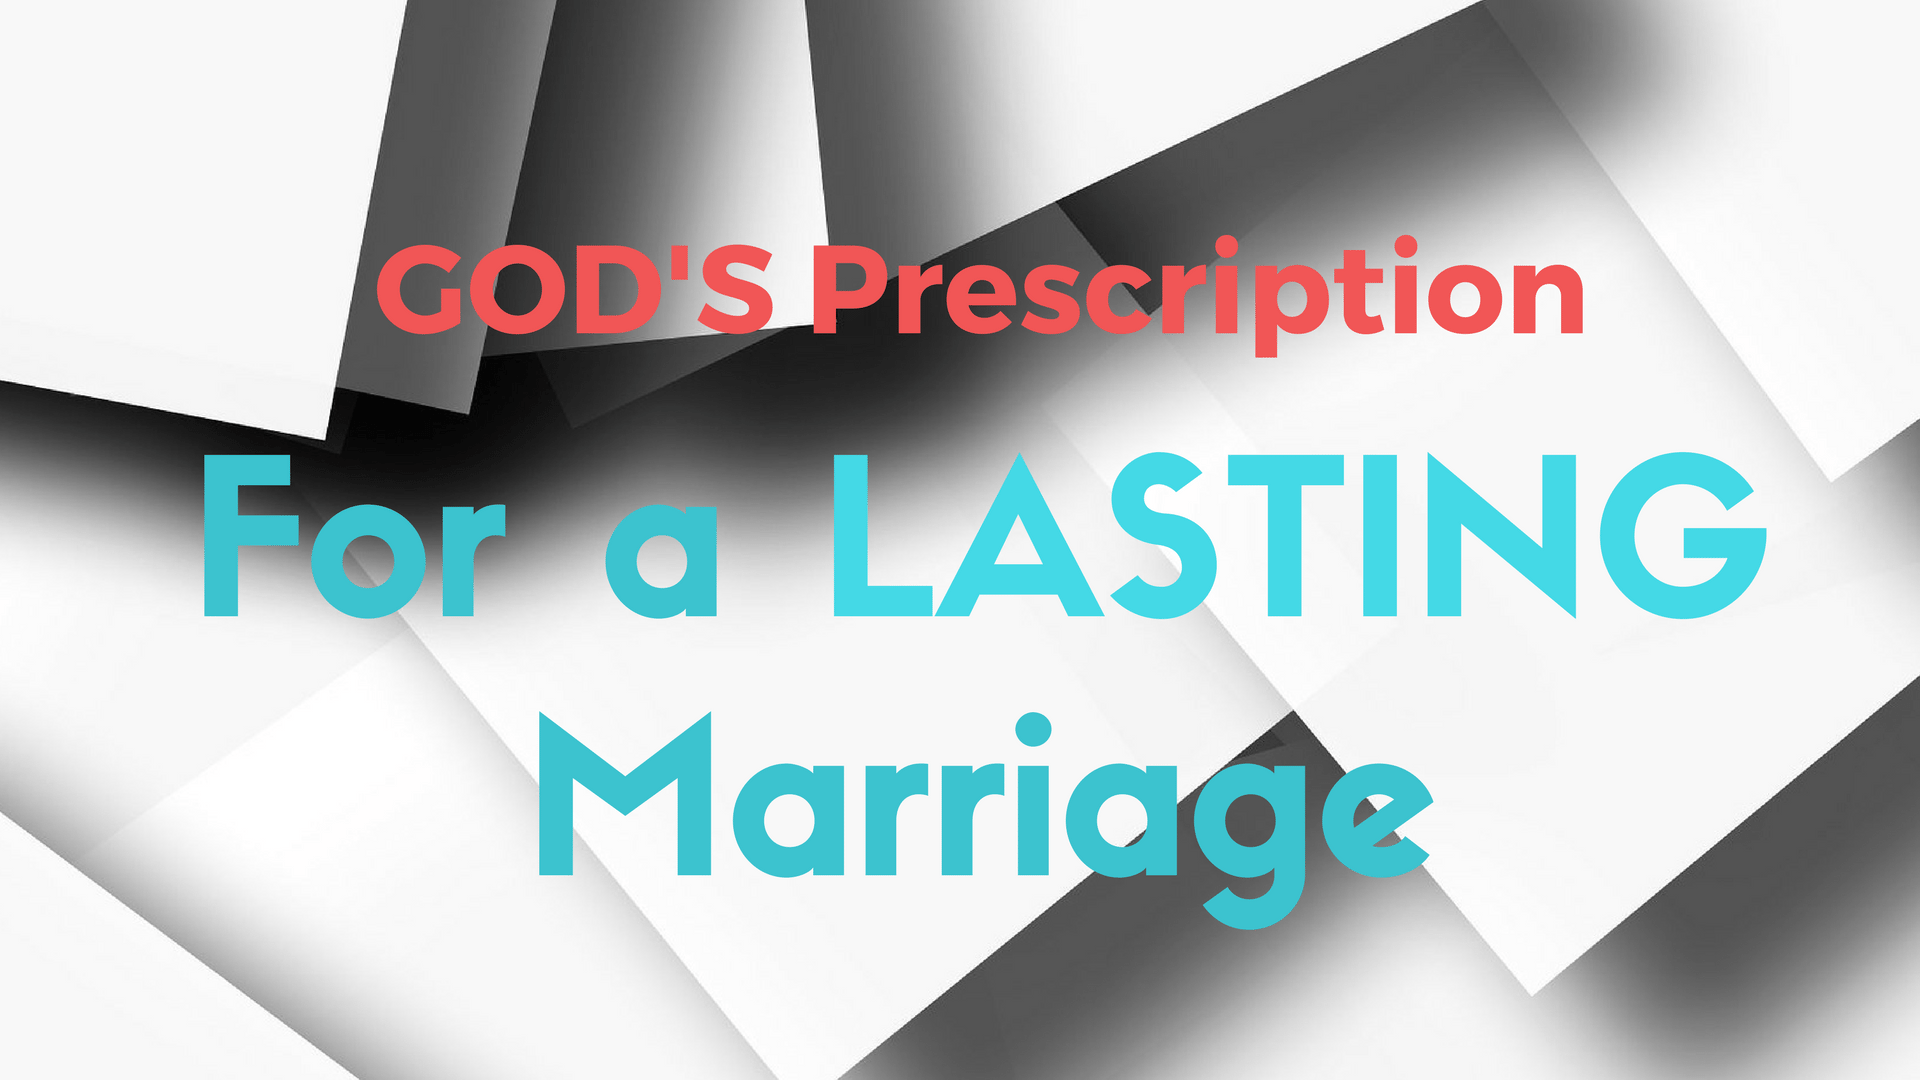 GOD'S PRESCRIPTION Lasting Marriage - Canva Pixabay background